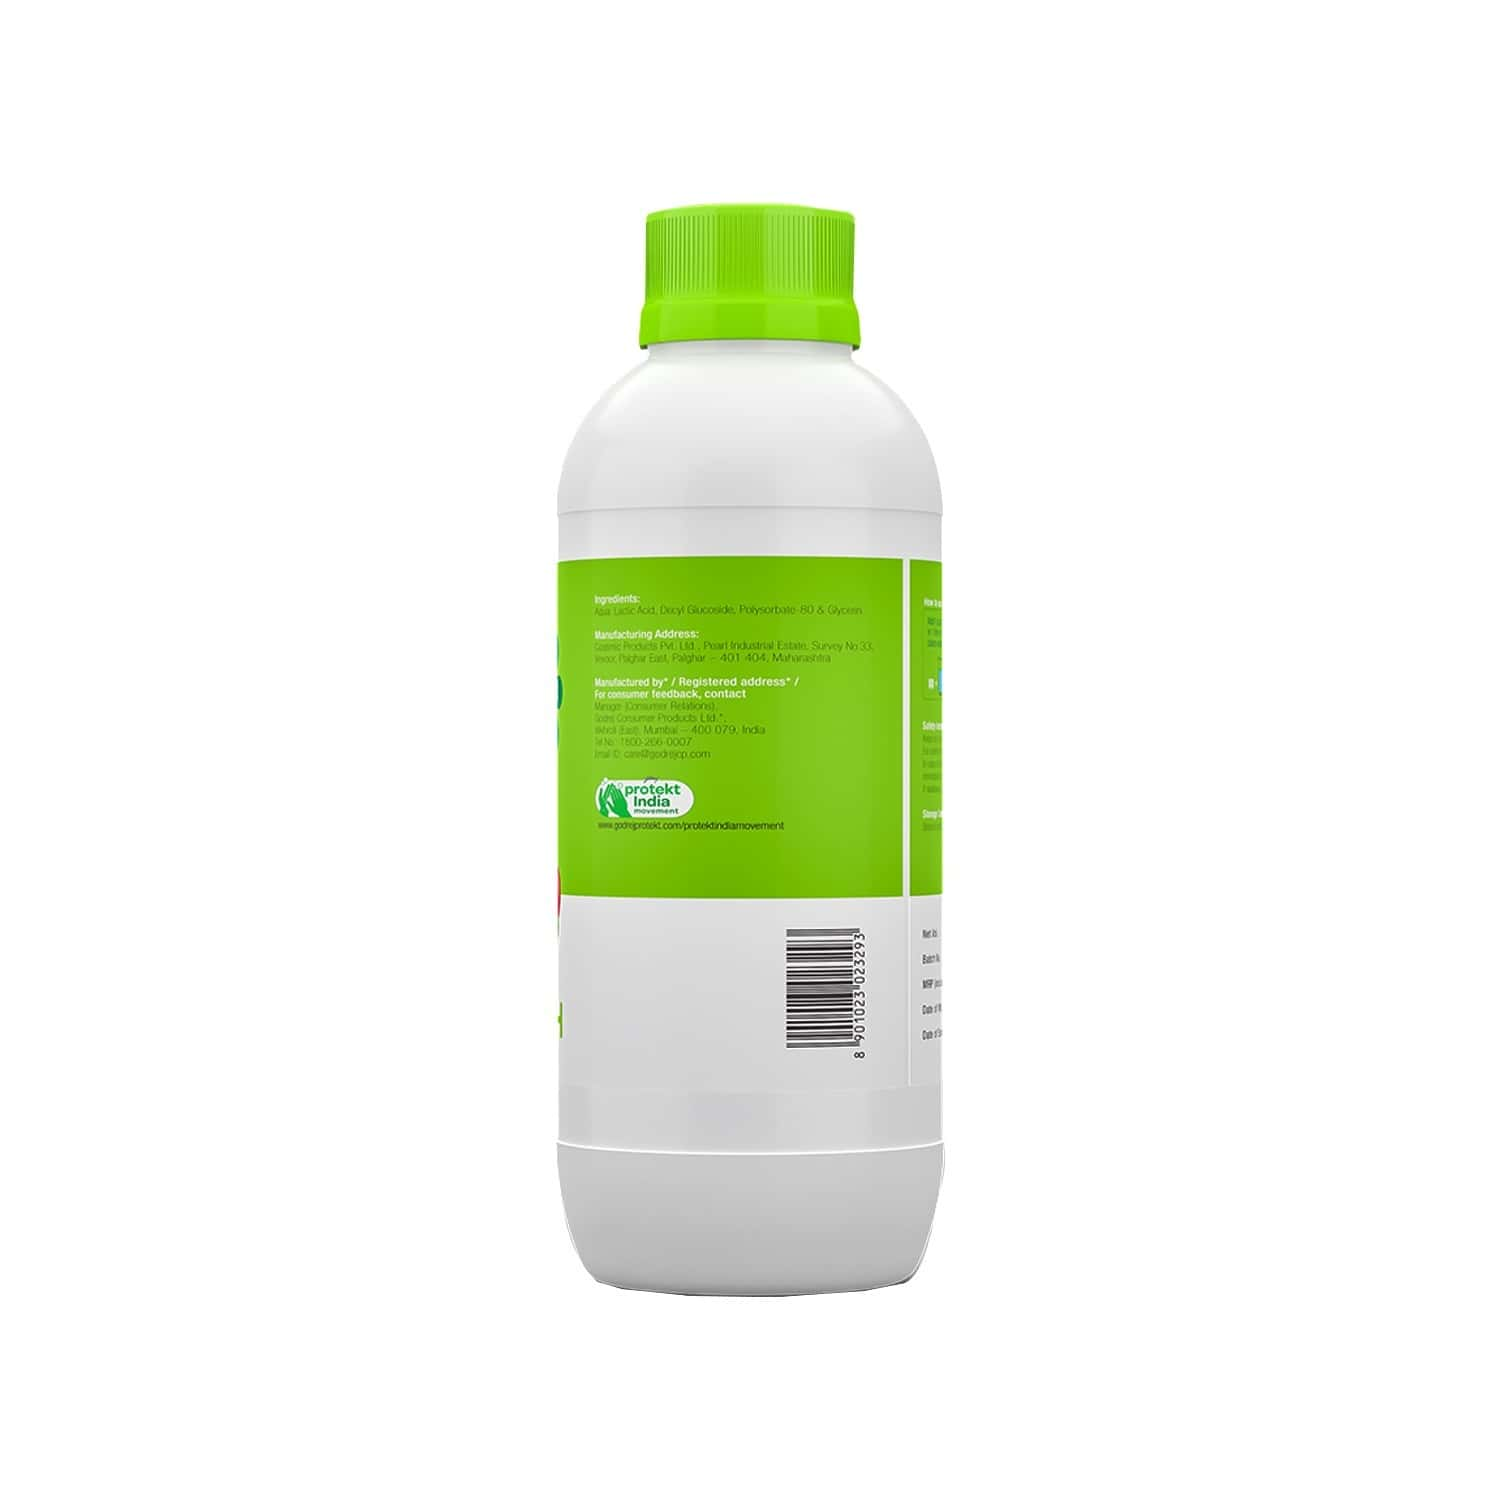 Godrej Protekt Germ Protection Fruit & Veggie Wash, Natural Ingredient Based, Removes Germs, Bacteria, Fungus, Wax & Dirt - 500ml